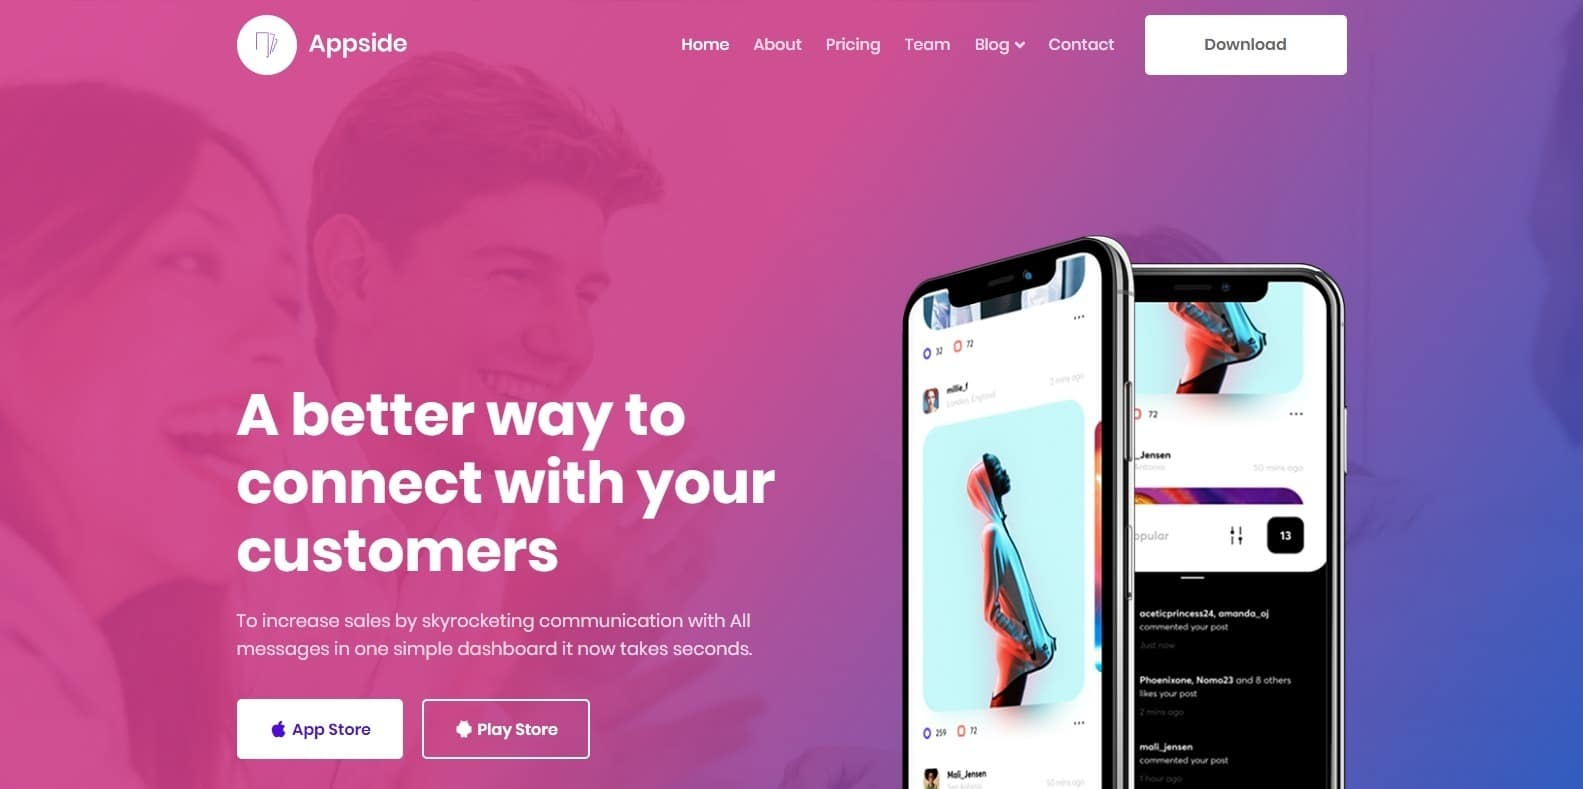 appside-landing-page-template